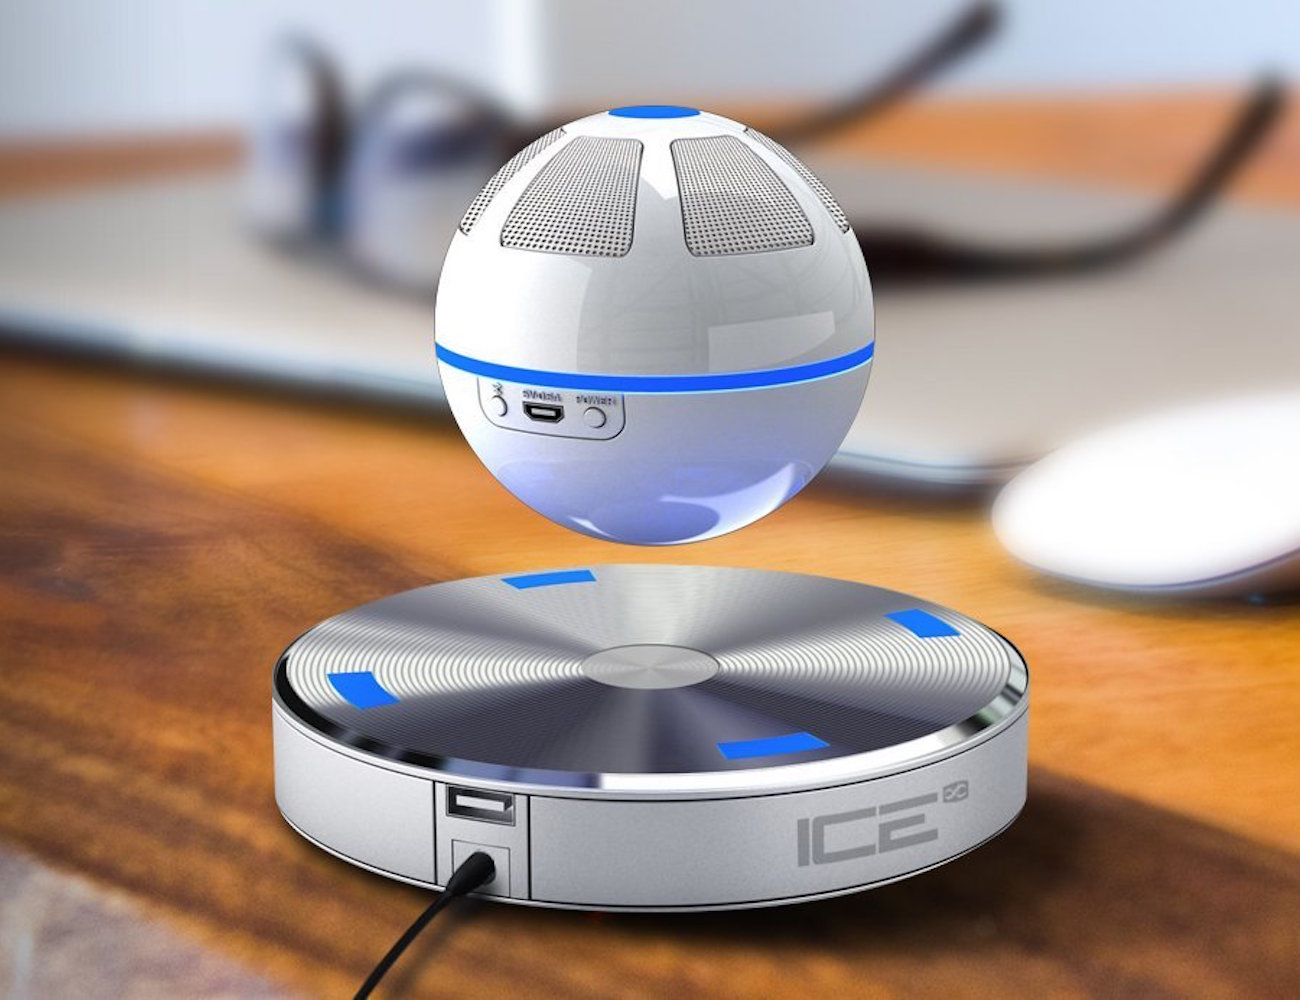 ICEORB Floating Bluetooth Speaker